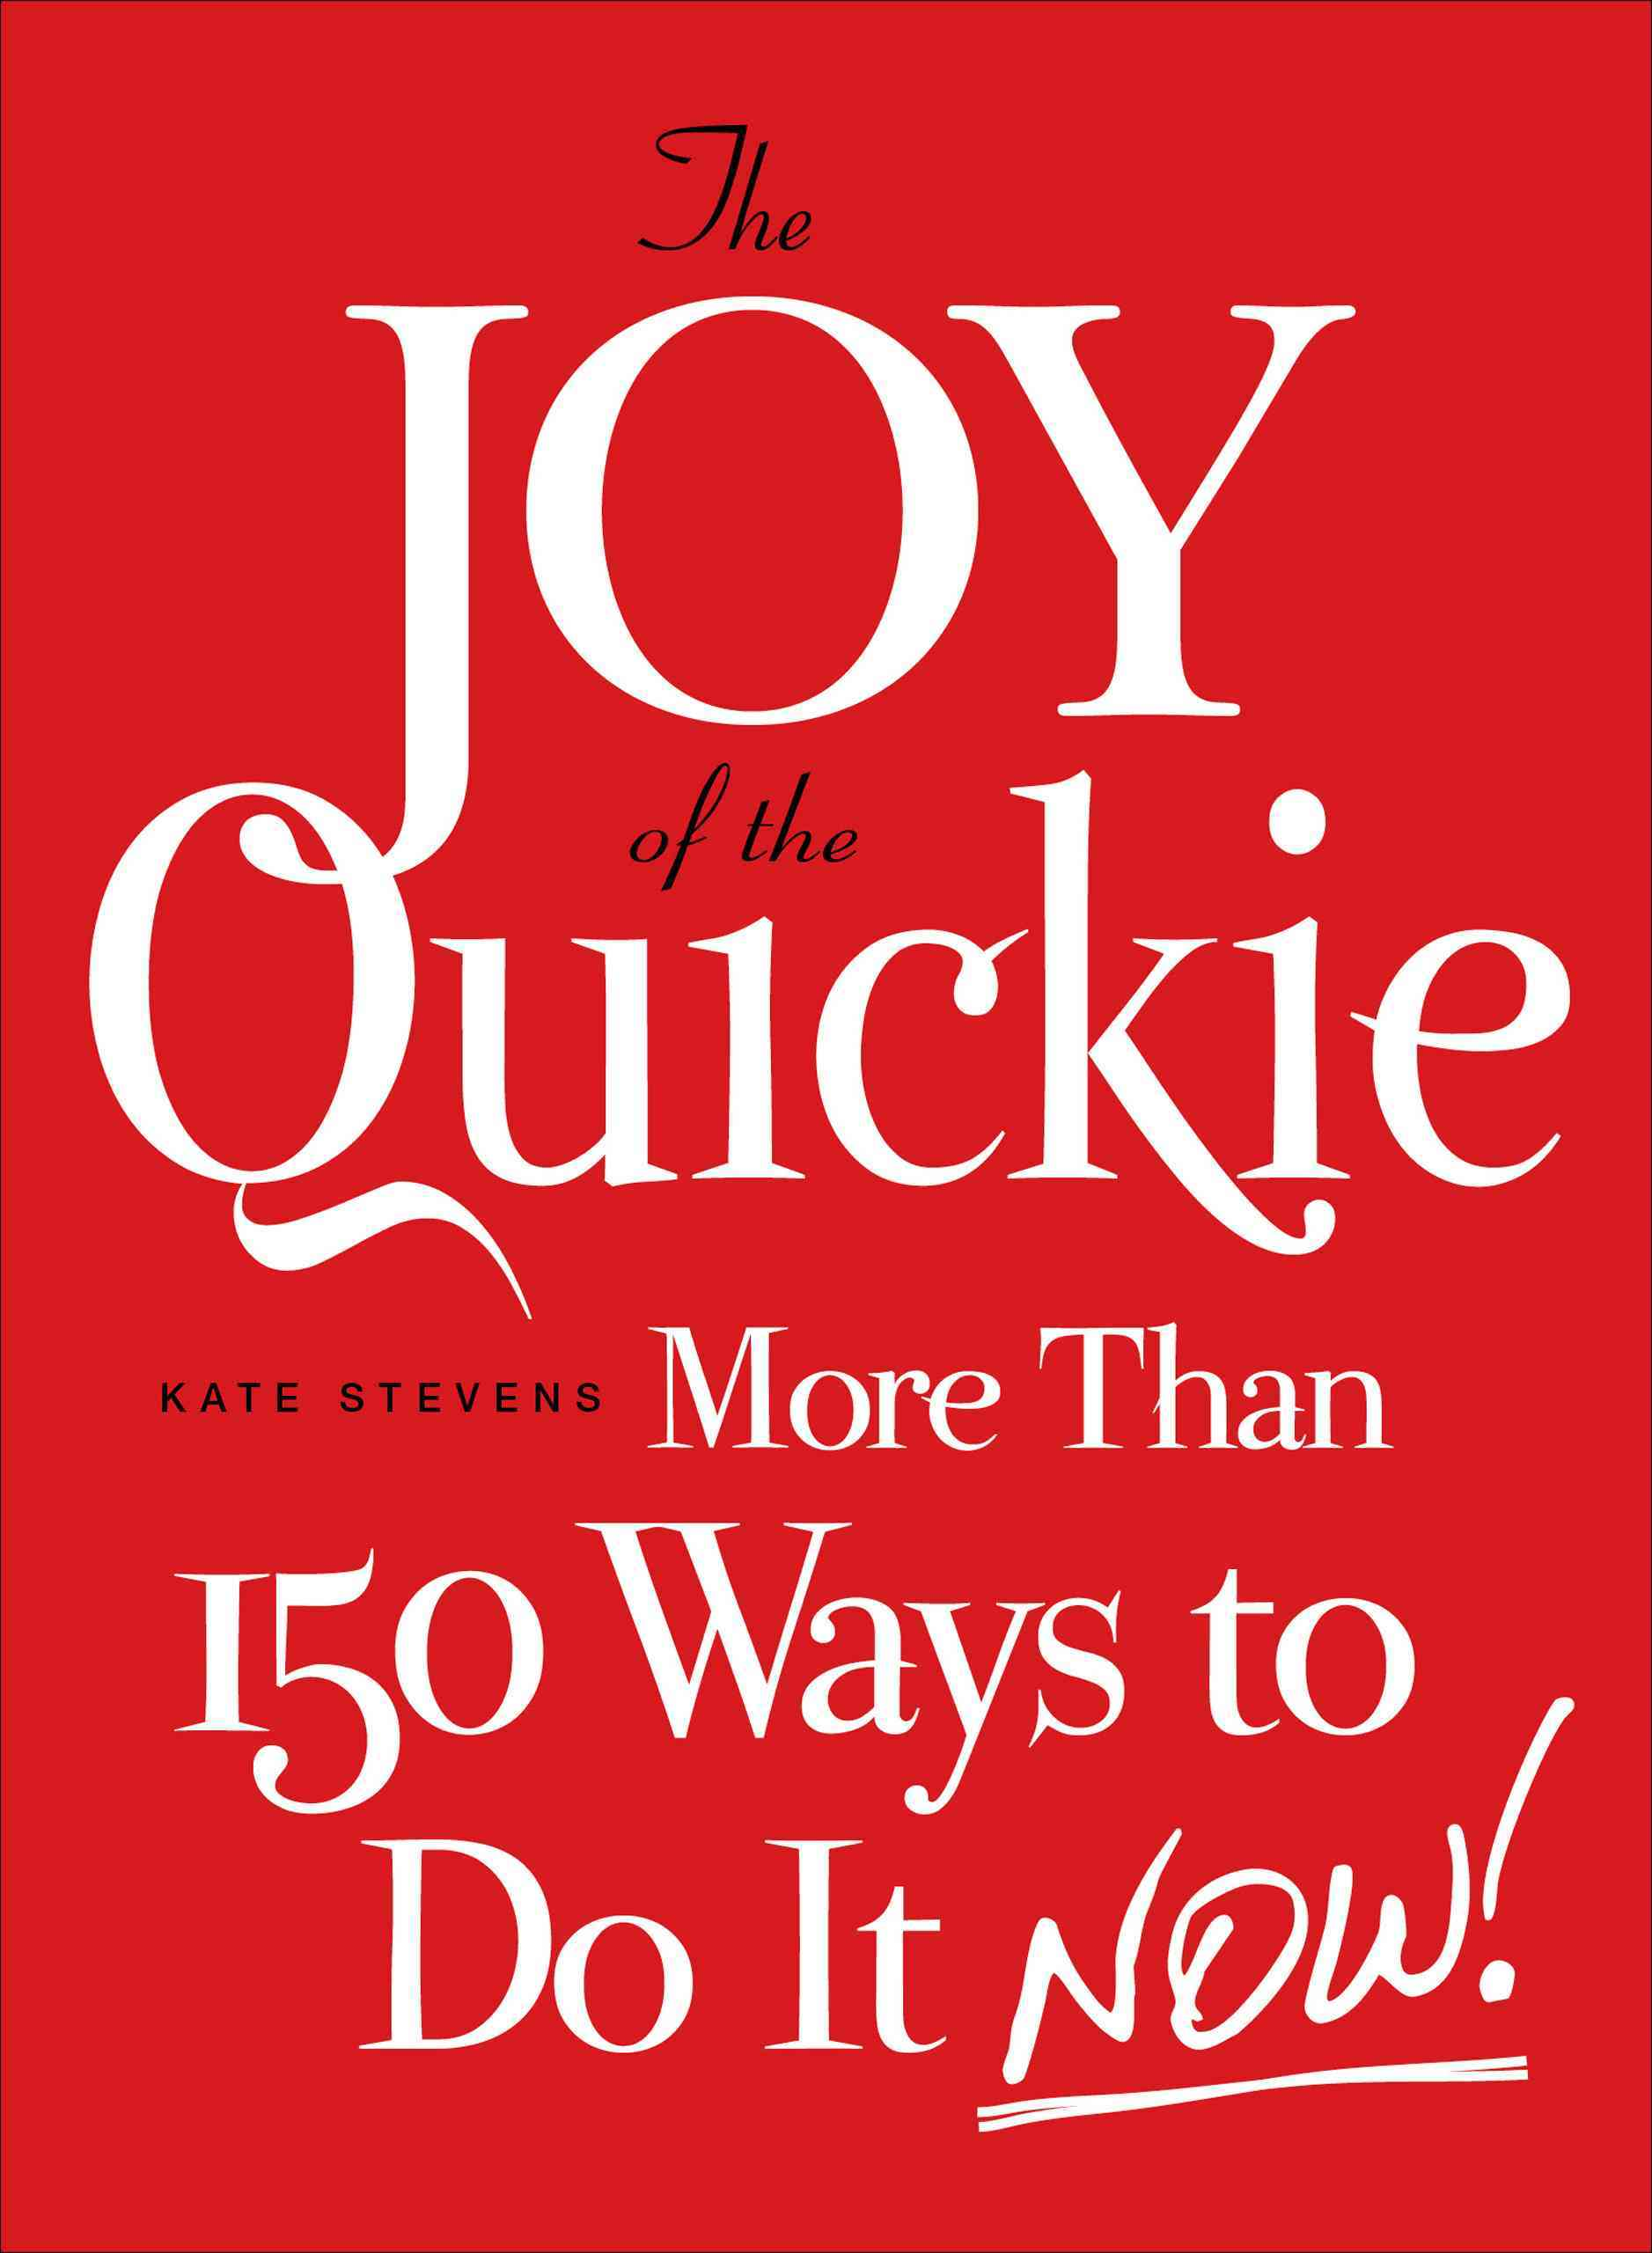 The Joy of the Quickie: More Than 150 Ways to Do It Now! (Paperback)